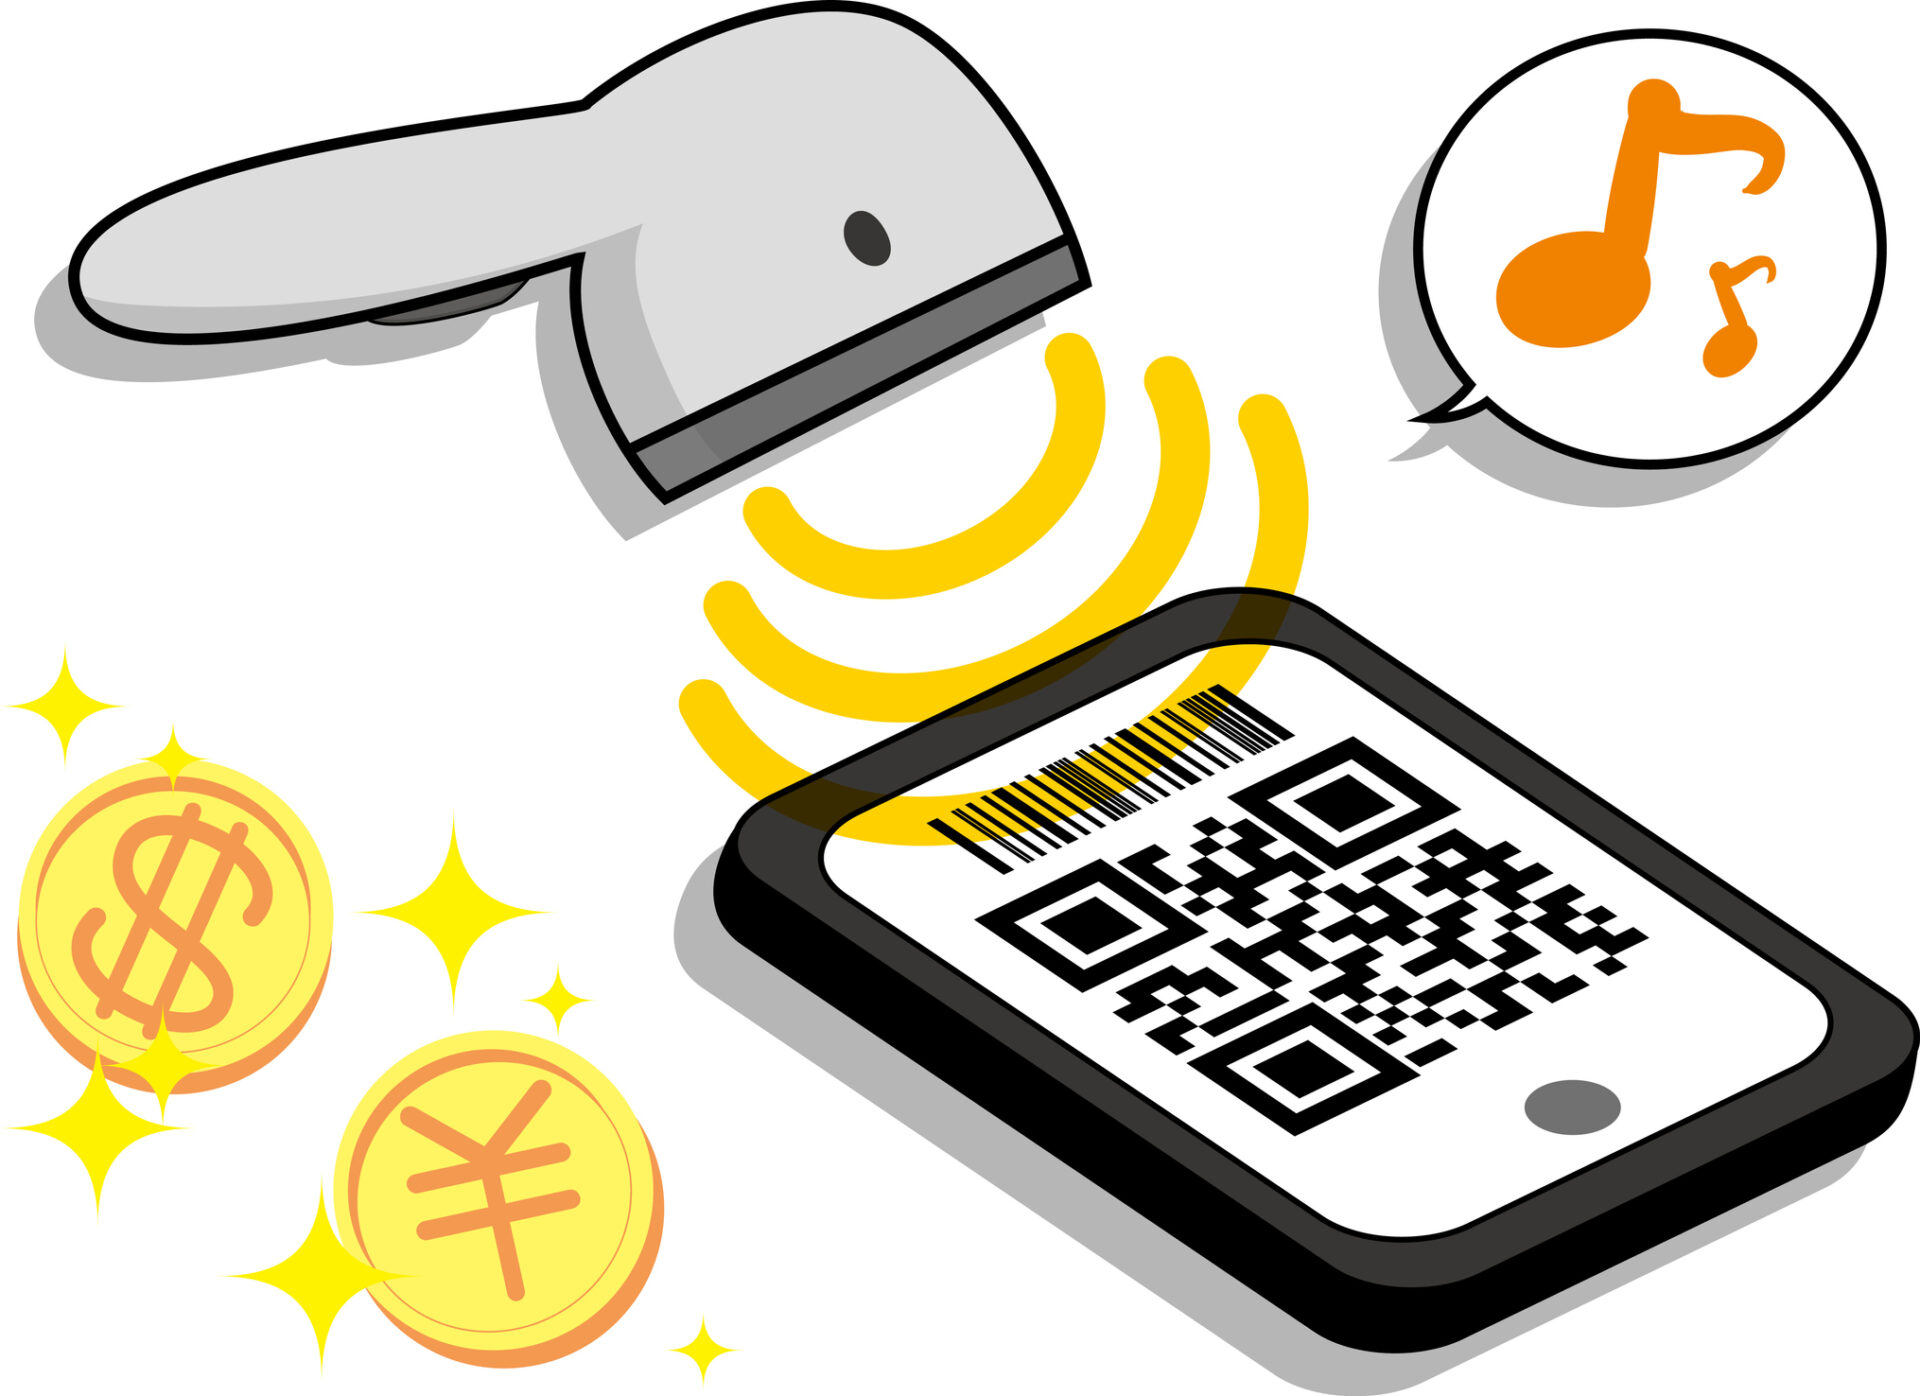 Display the QR code and pay for your smartphone.